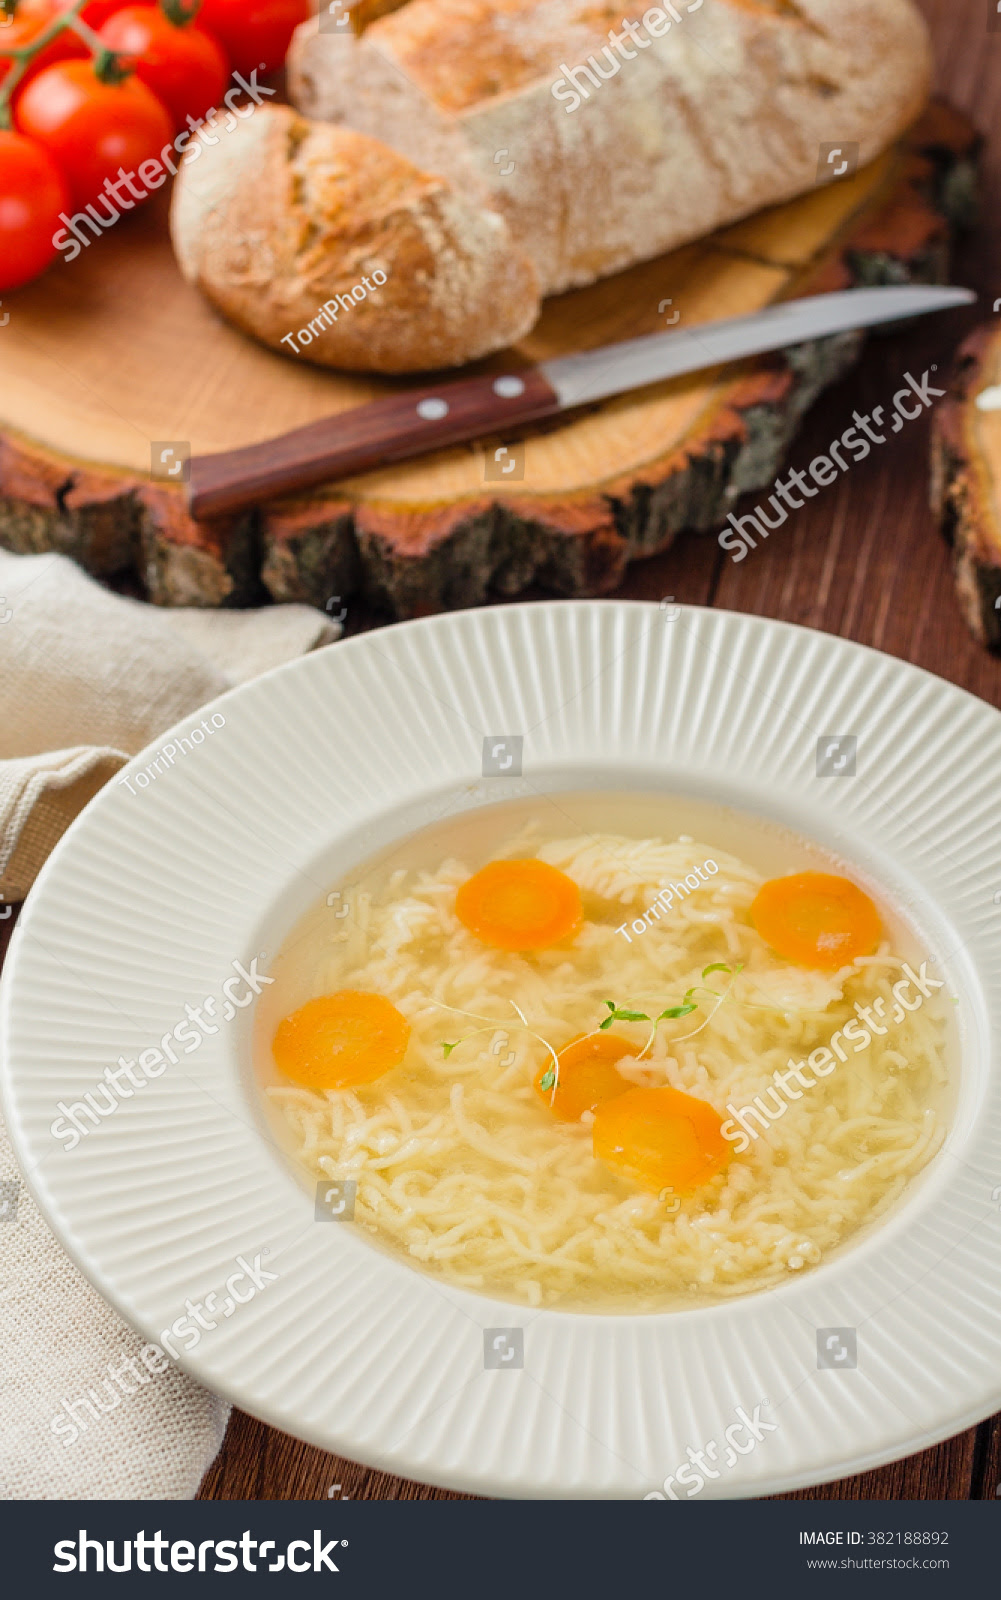 http://www.shutterstock.com/pic-382188892/stock-photo-chicken-broth-with-noodles-and-carrots-in-a-white-plate-on-a-rustic-wooden-background-shallow-focus.html